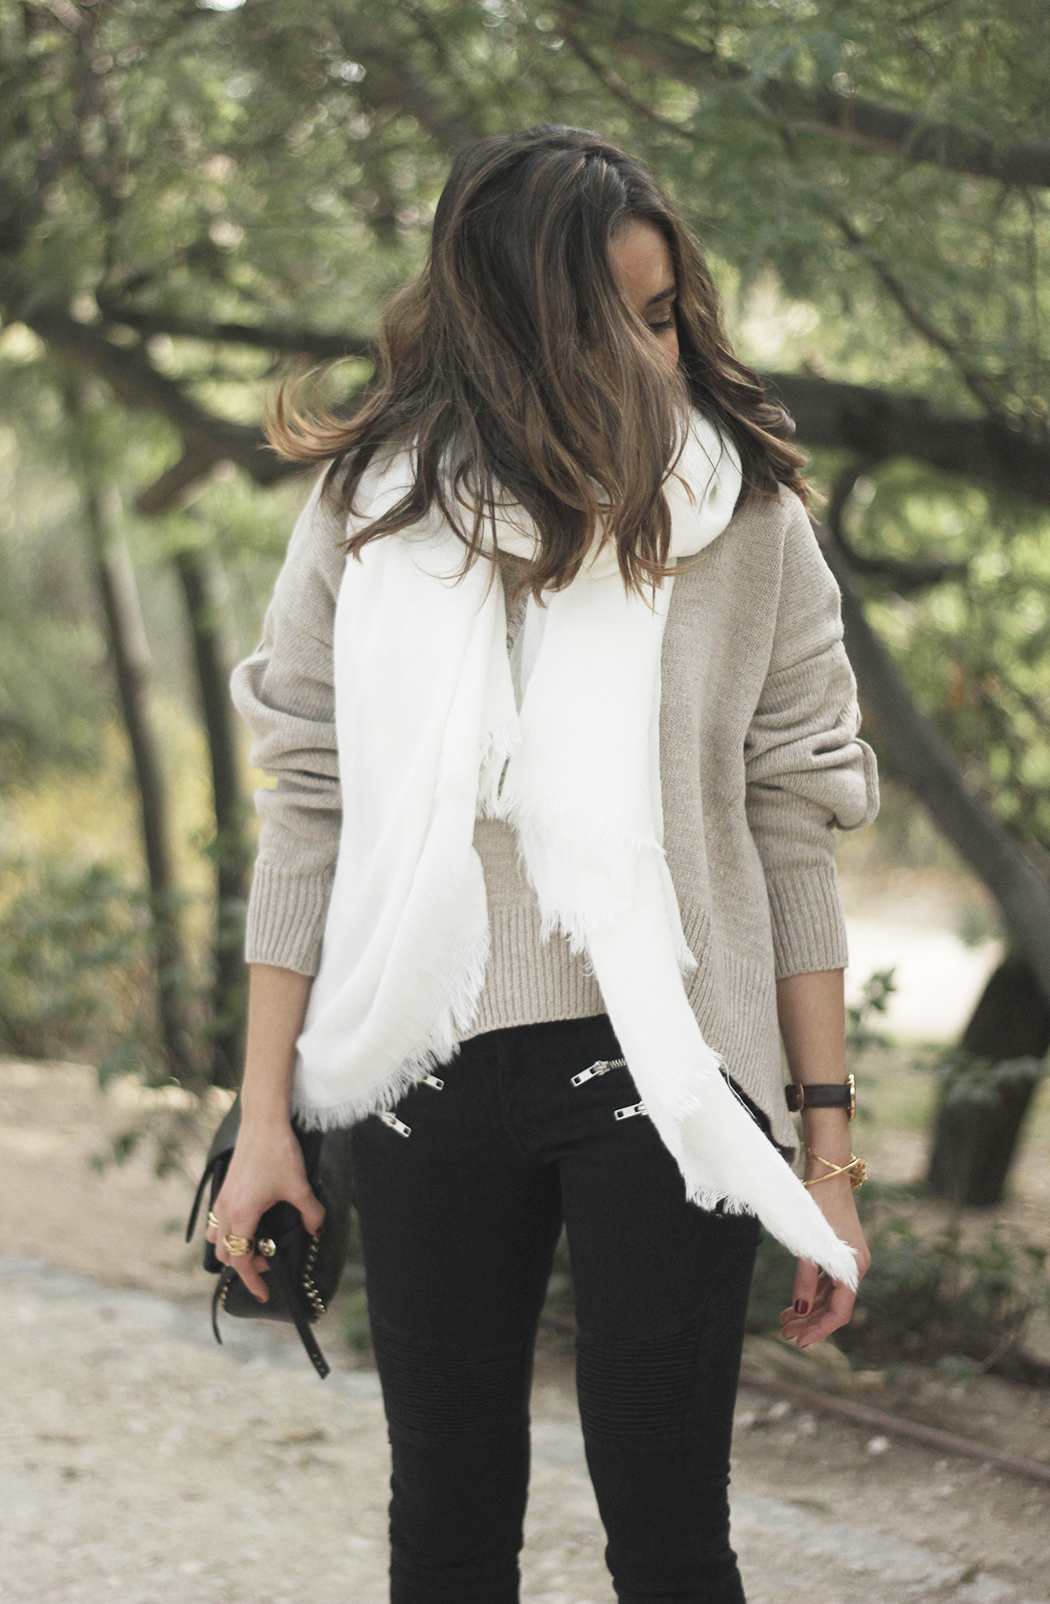 Beige Sweater Black Jeans Nude Heels White Scarf Coach Bag Outfit Style14